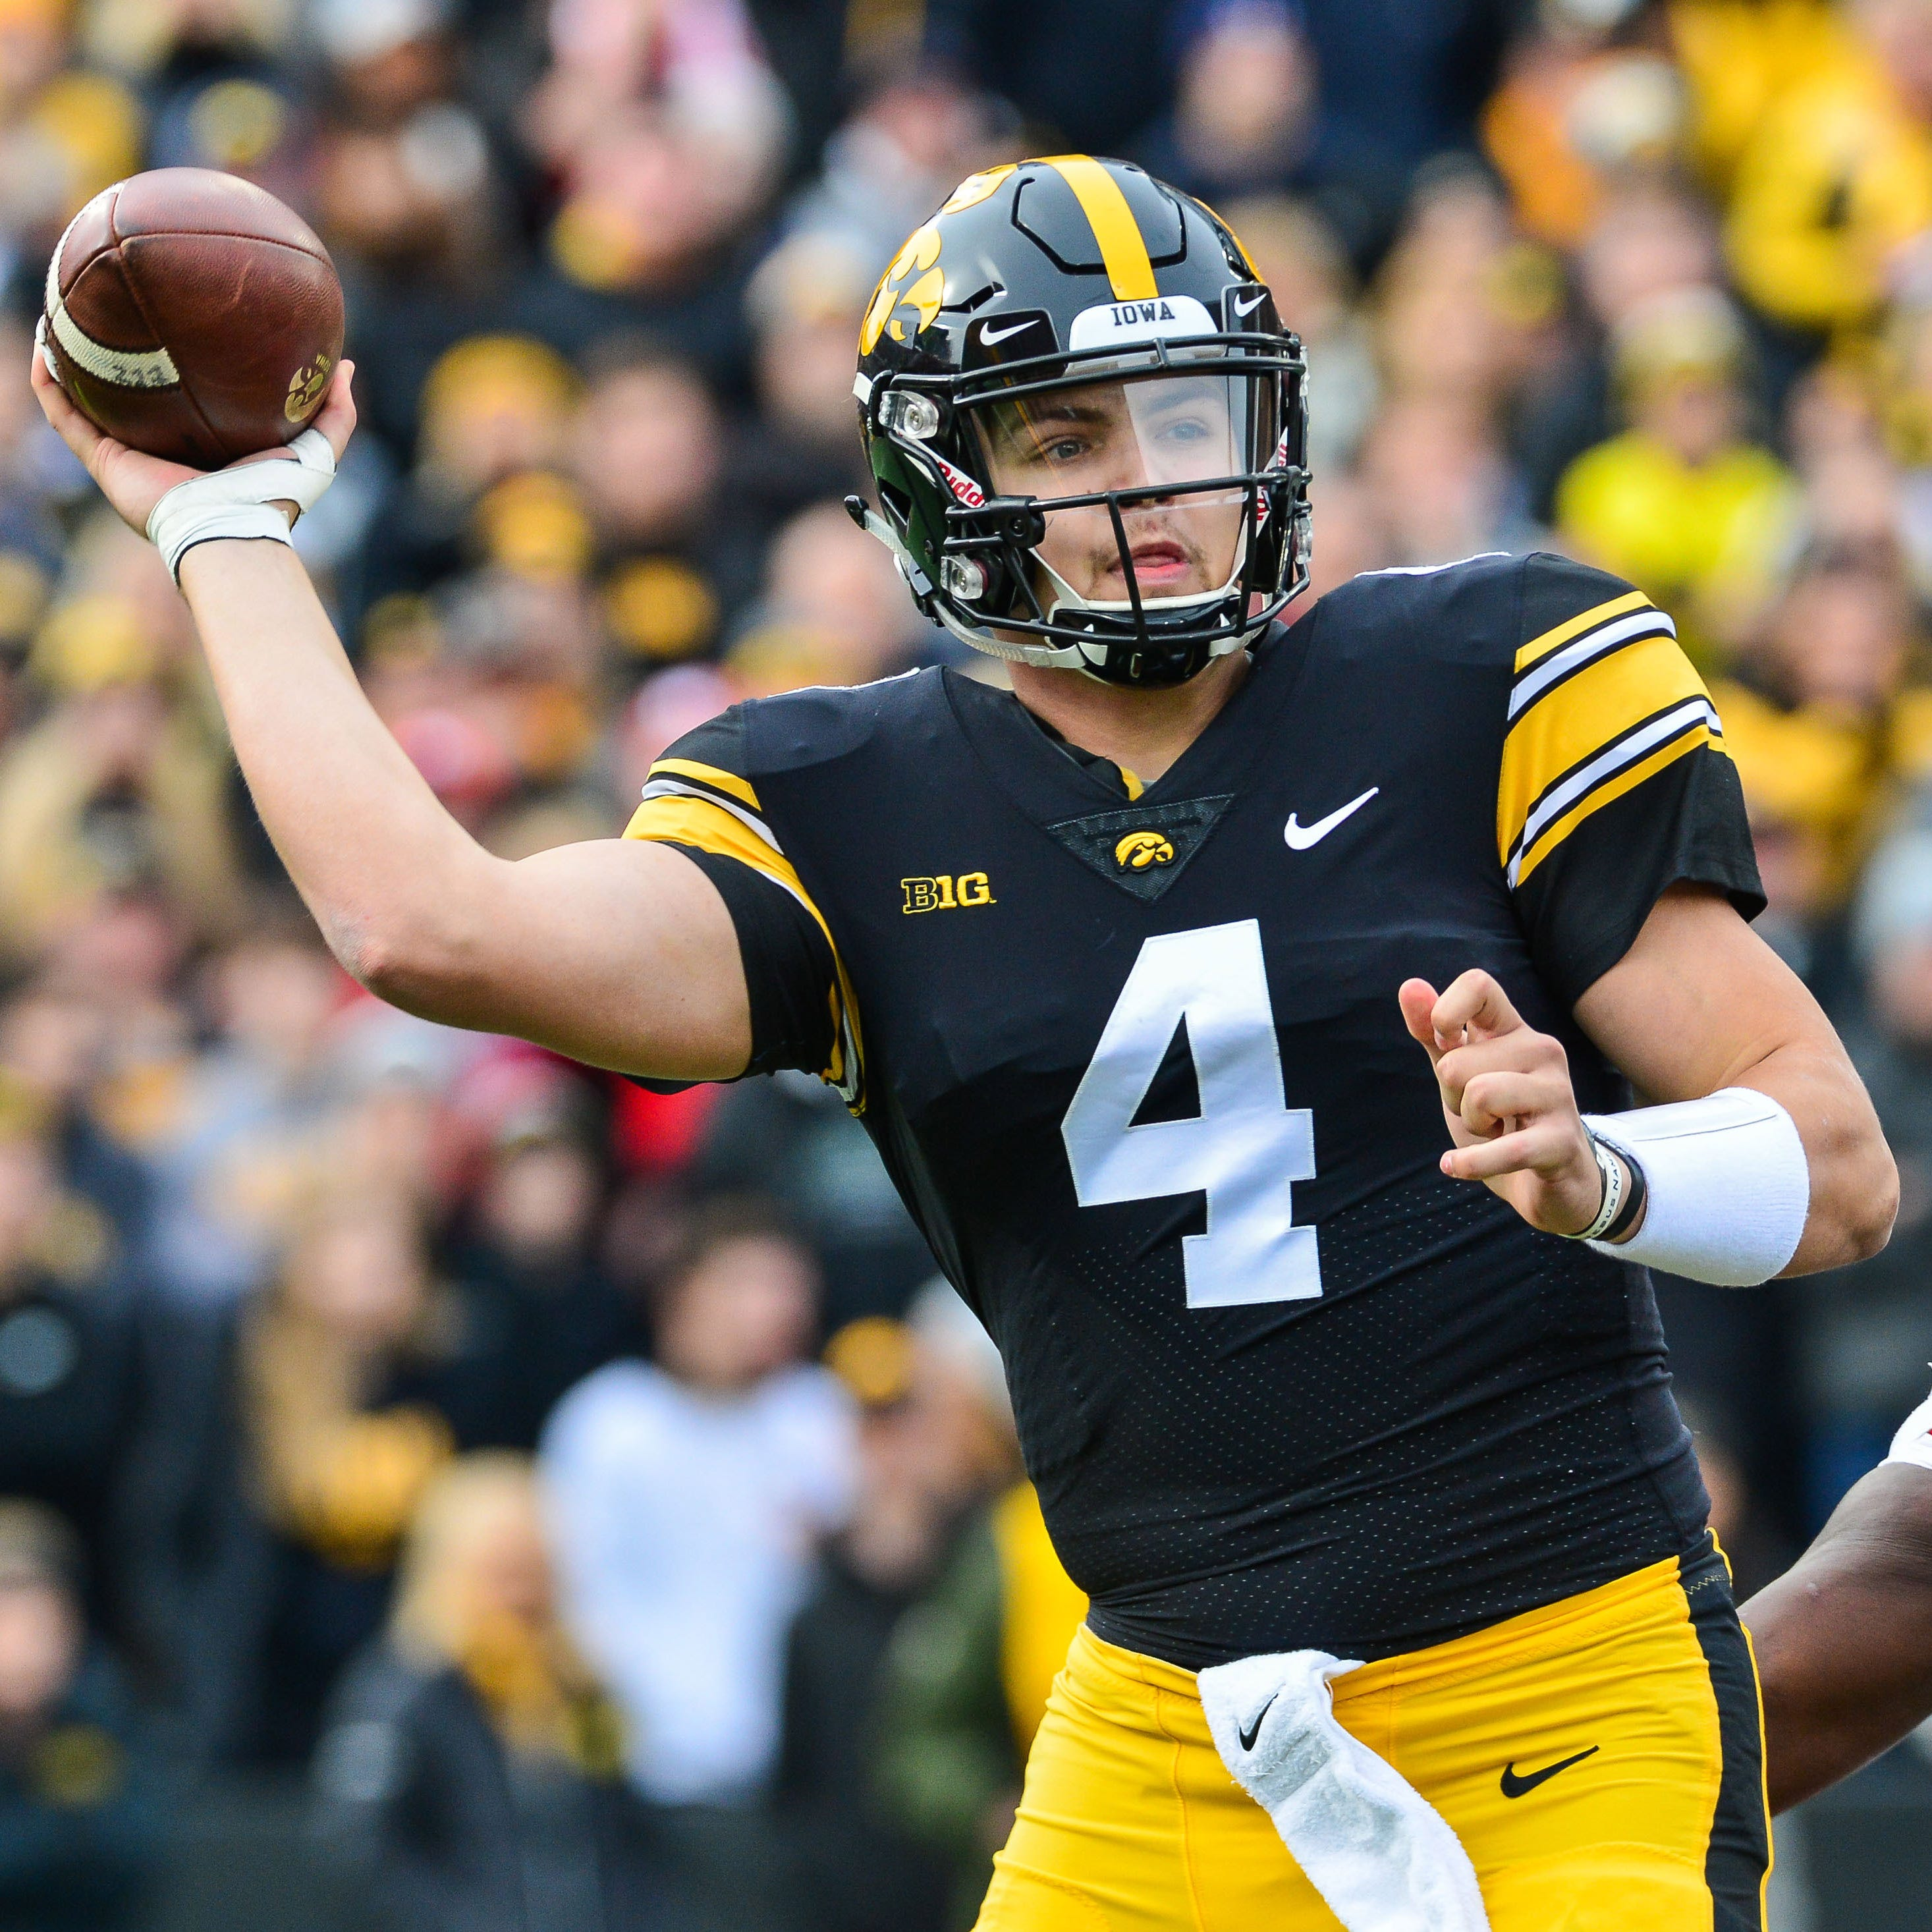 Nate Stanley carries a 16-9 record as an Iowa...